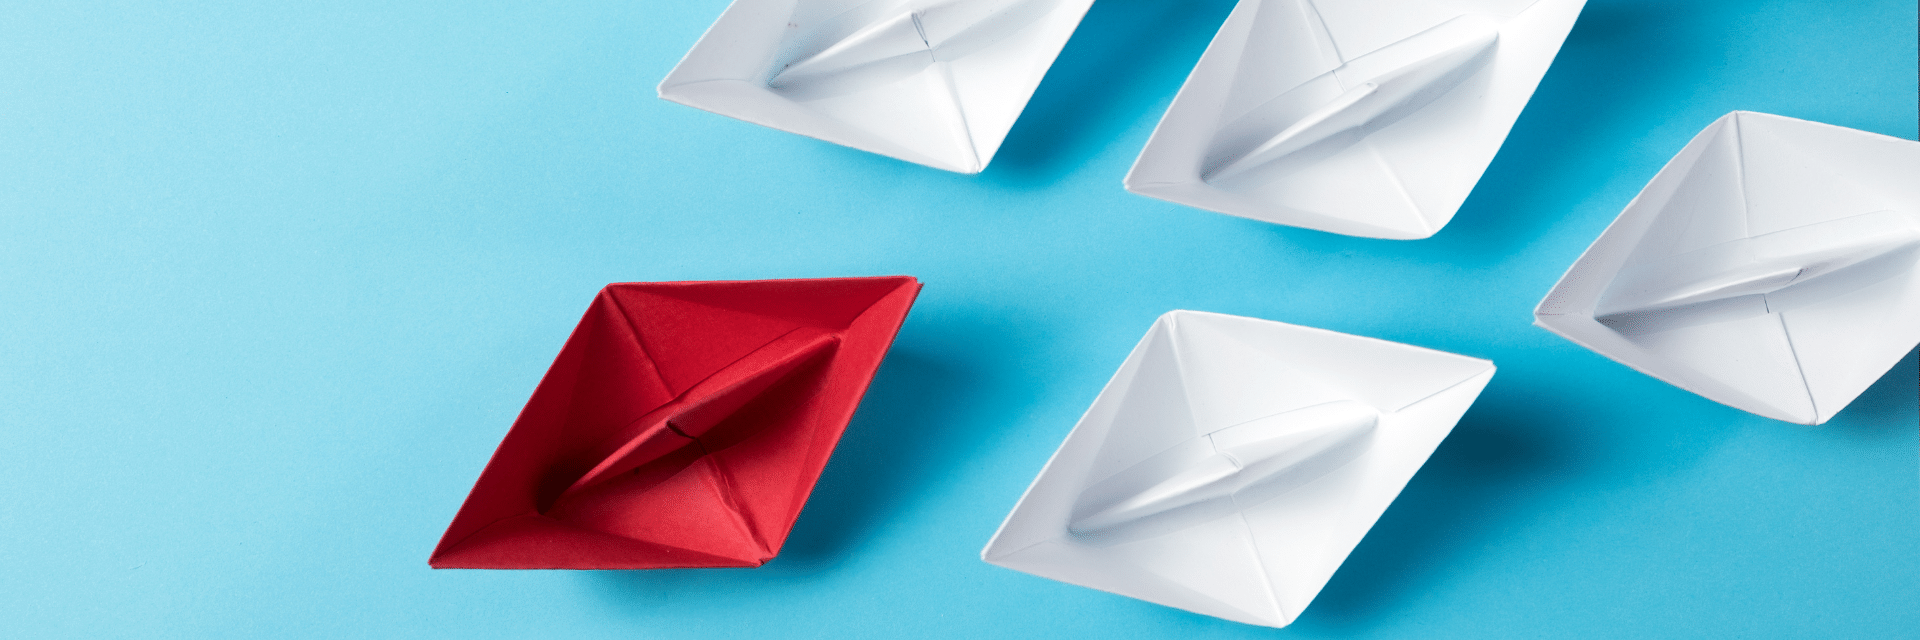 red paper boat leading white paper boats